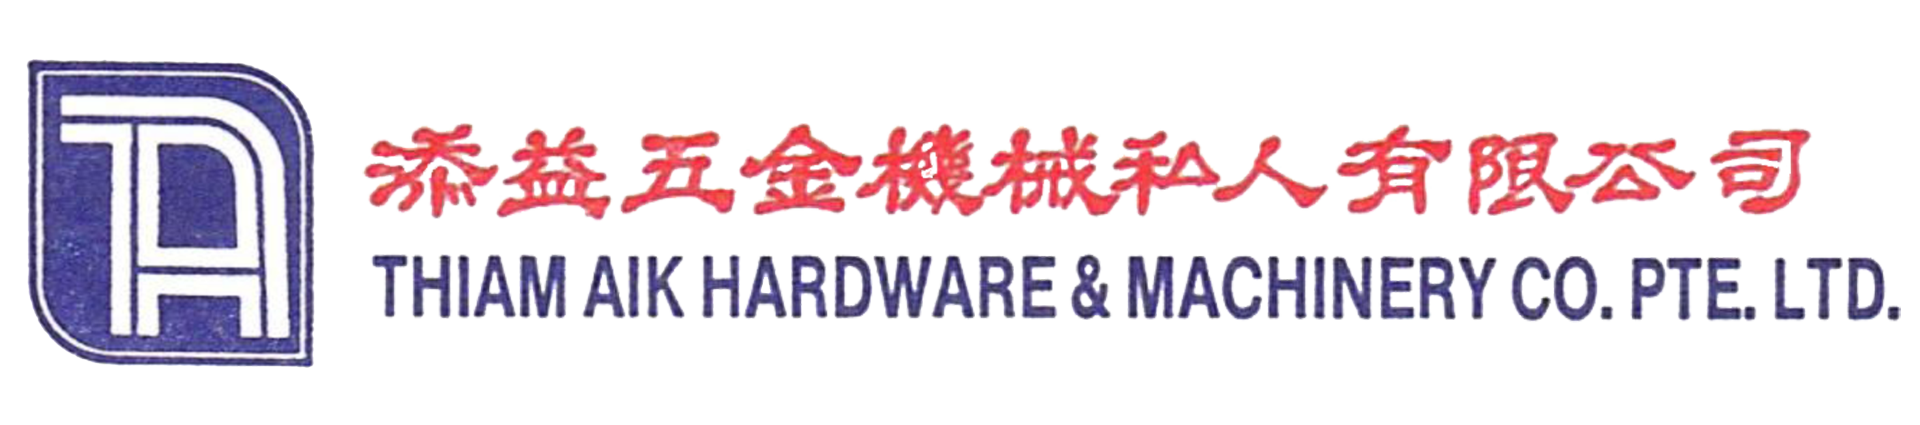 Thiam Aik Hardware & Machinery Co Pte Ltd